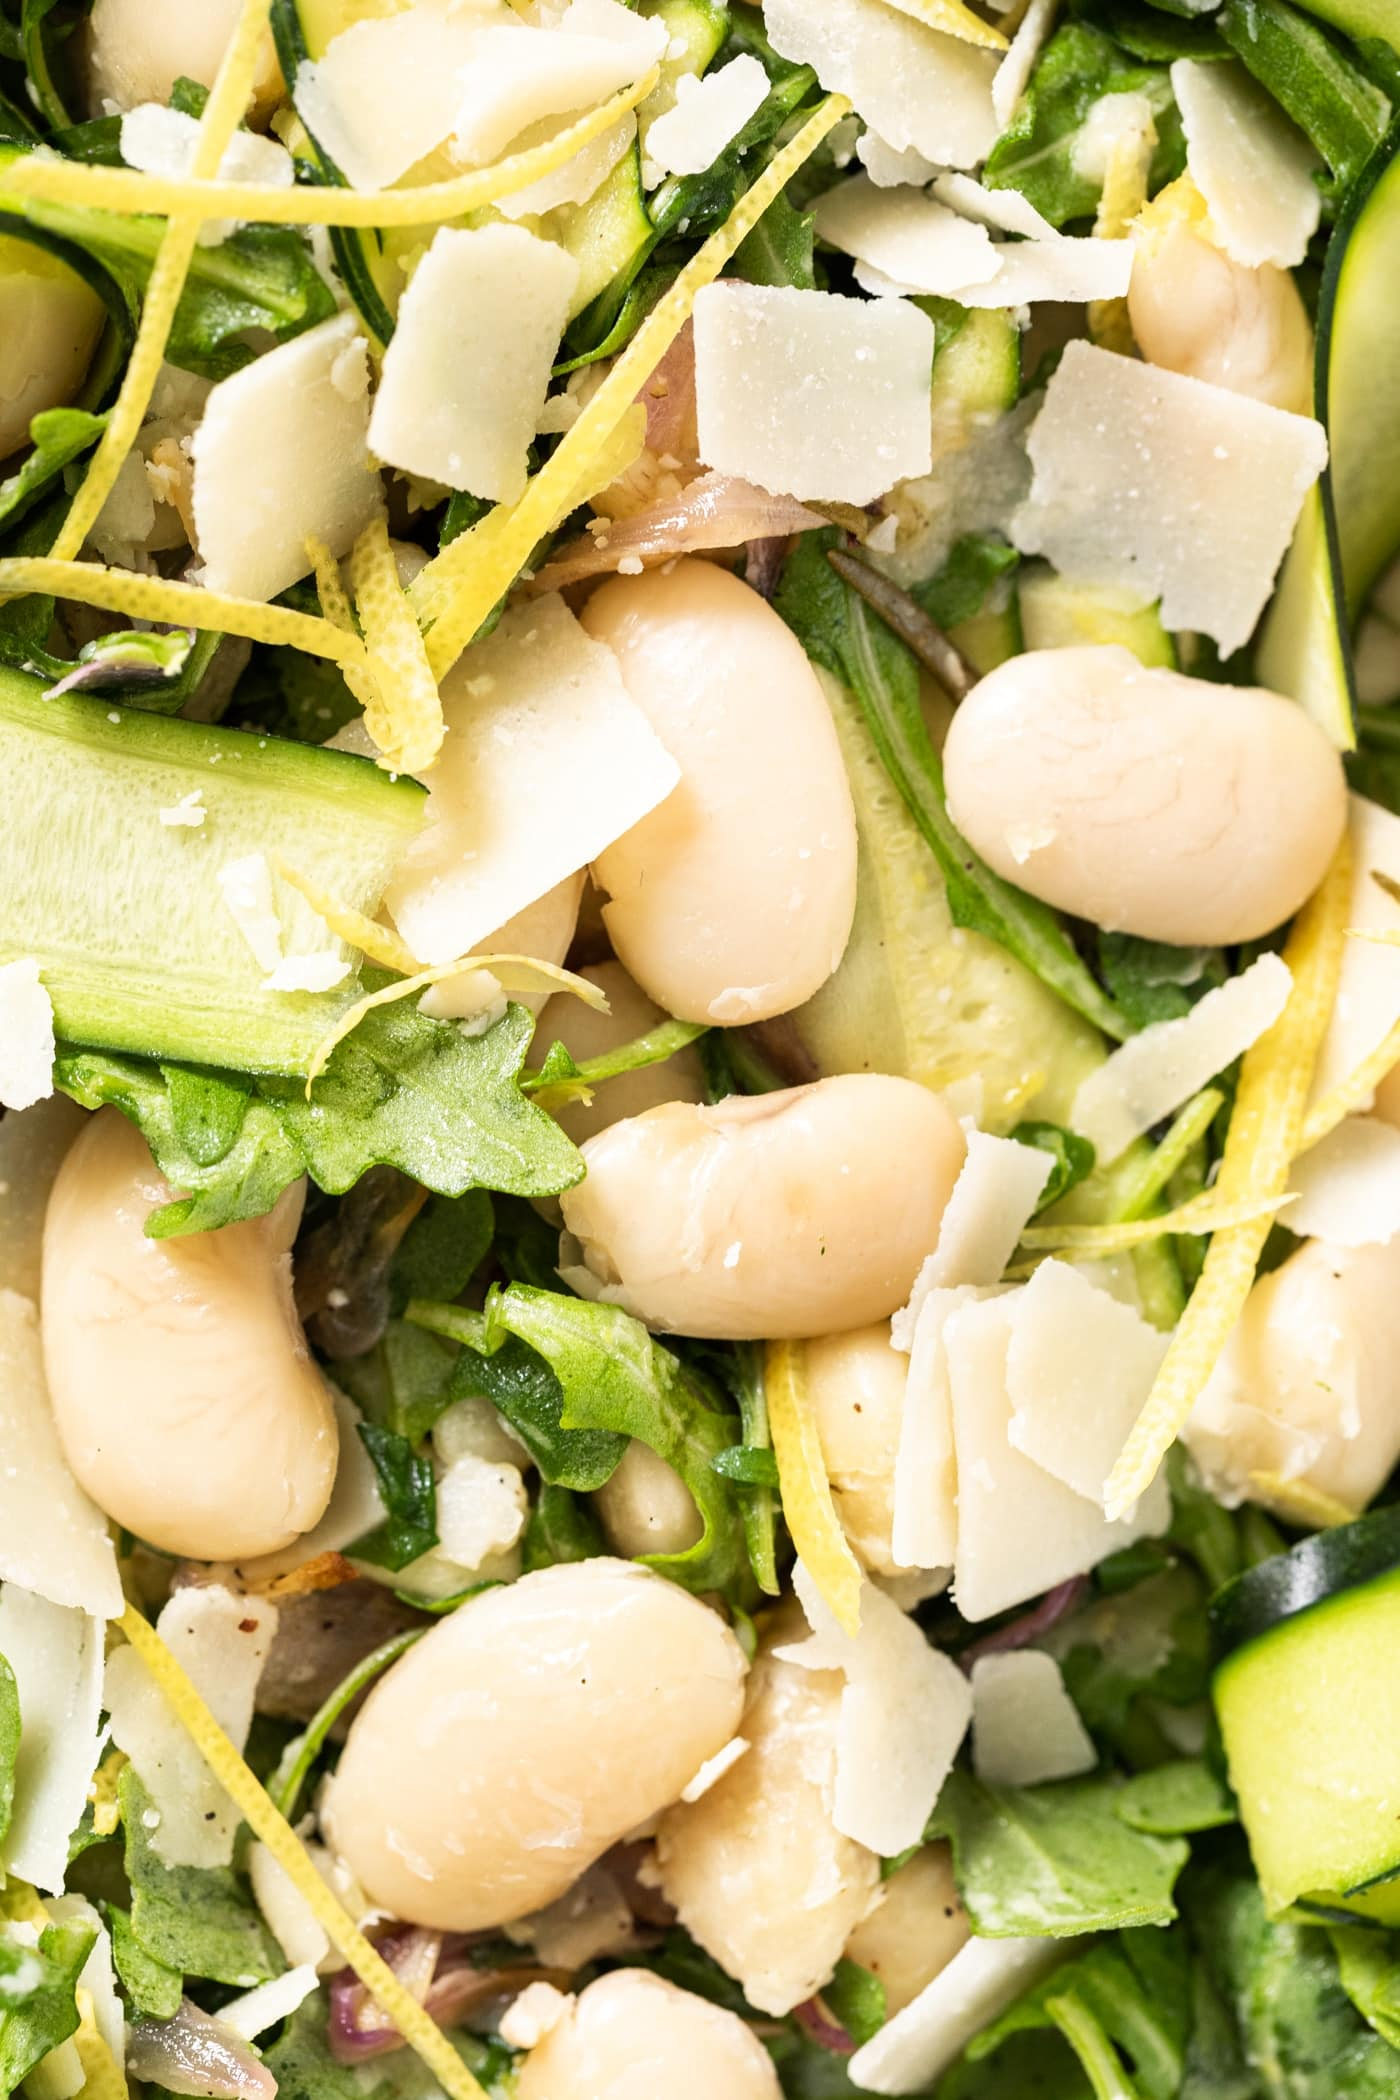 Close up view of large white beans nestled among greens and Parmesan and lemon zest